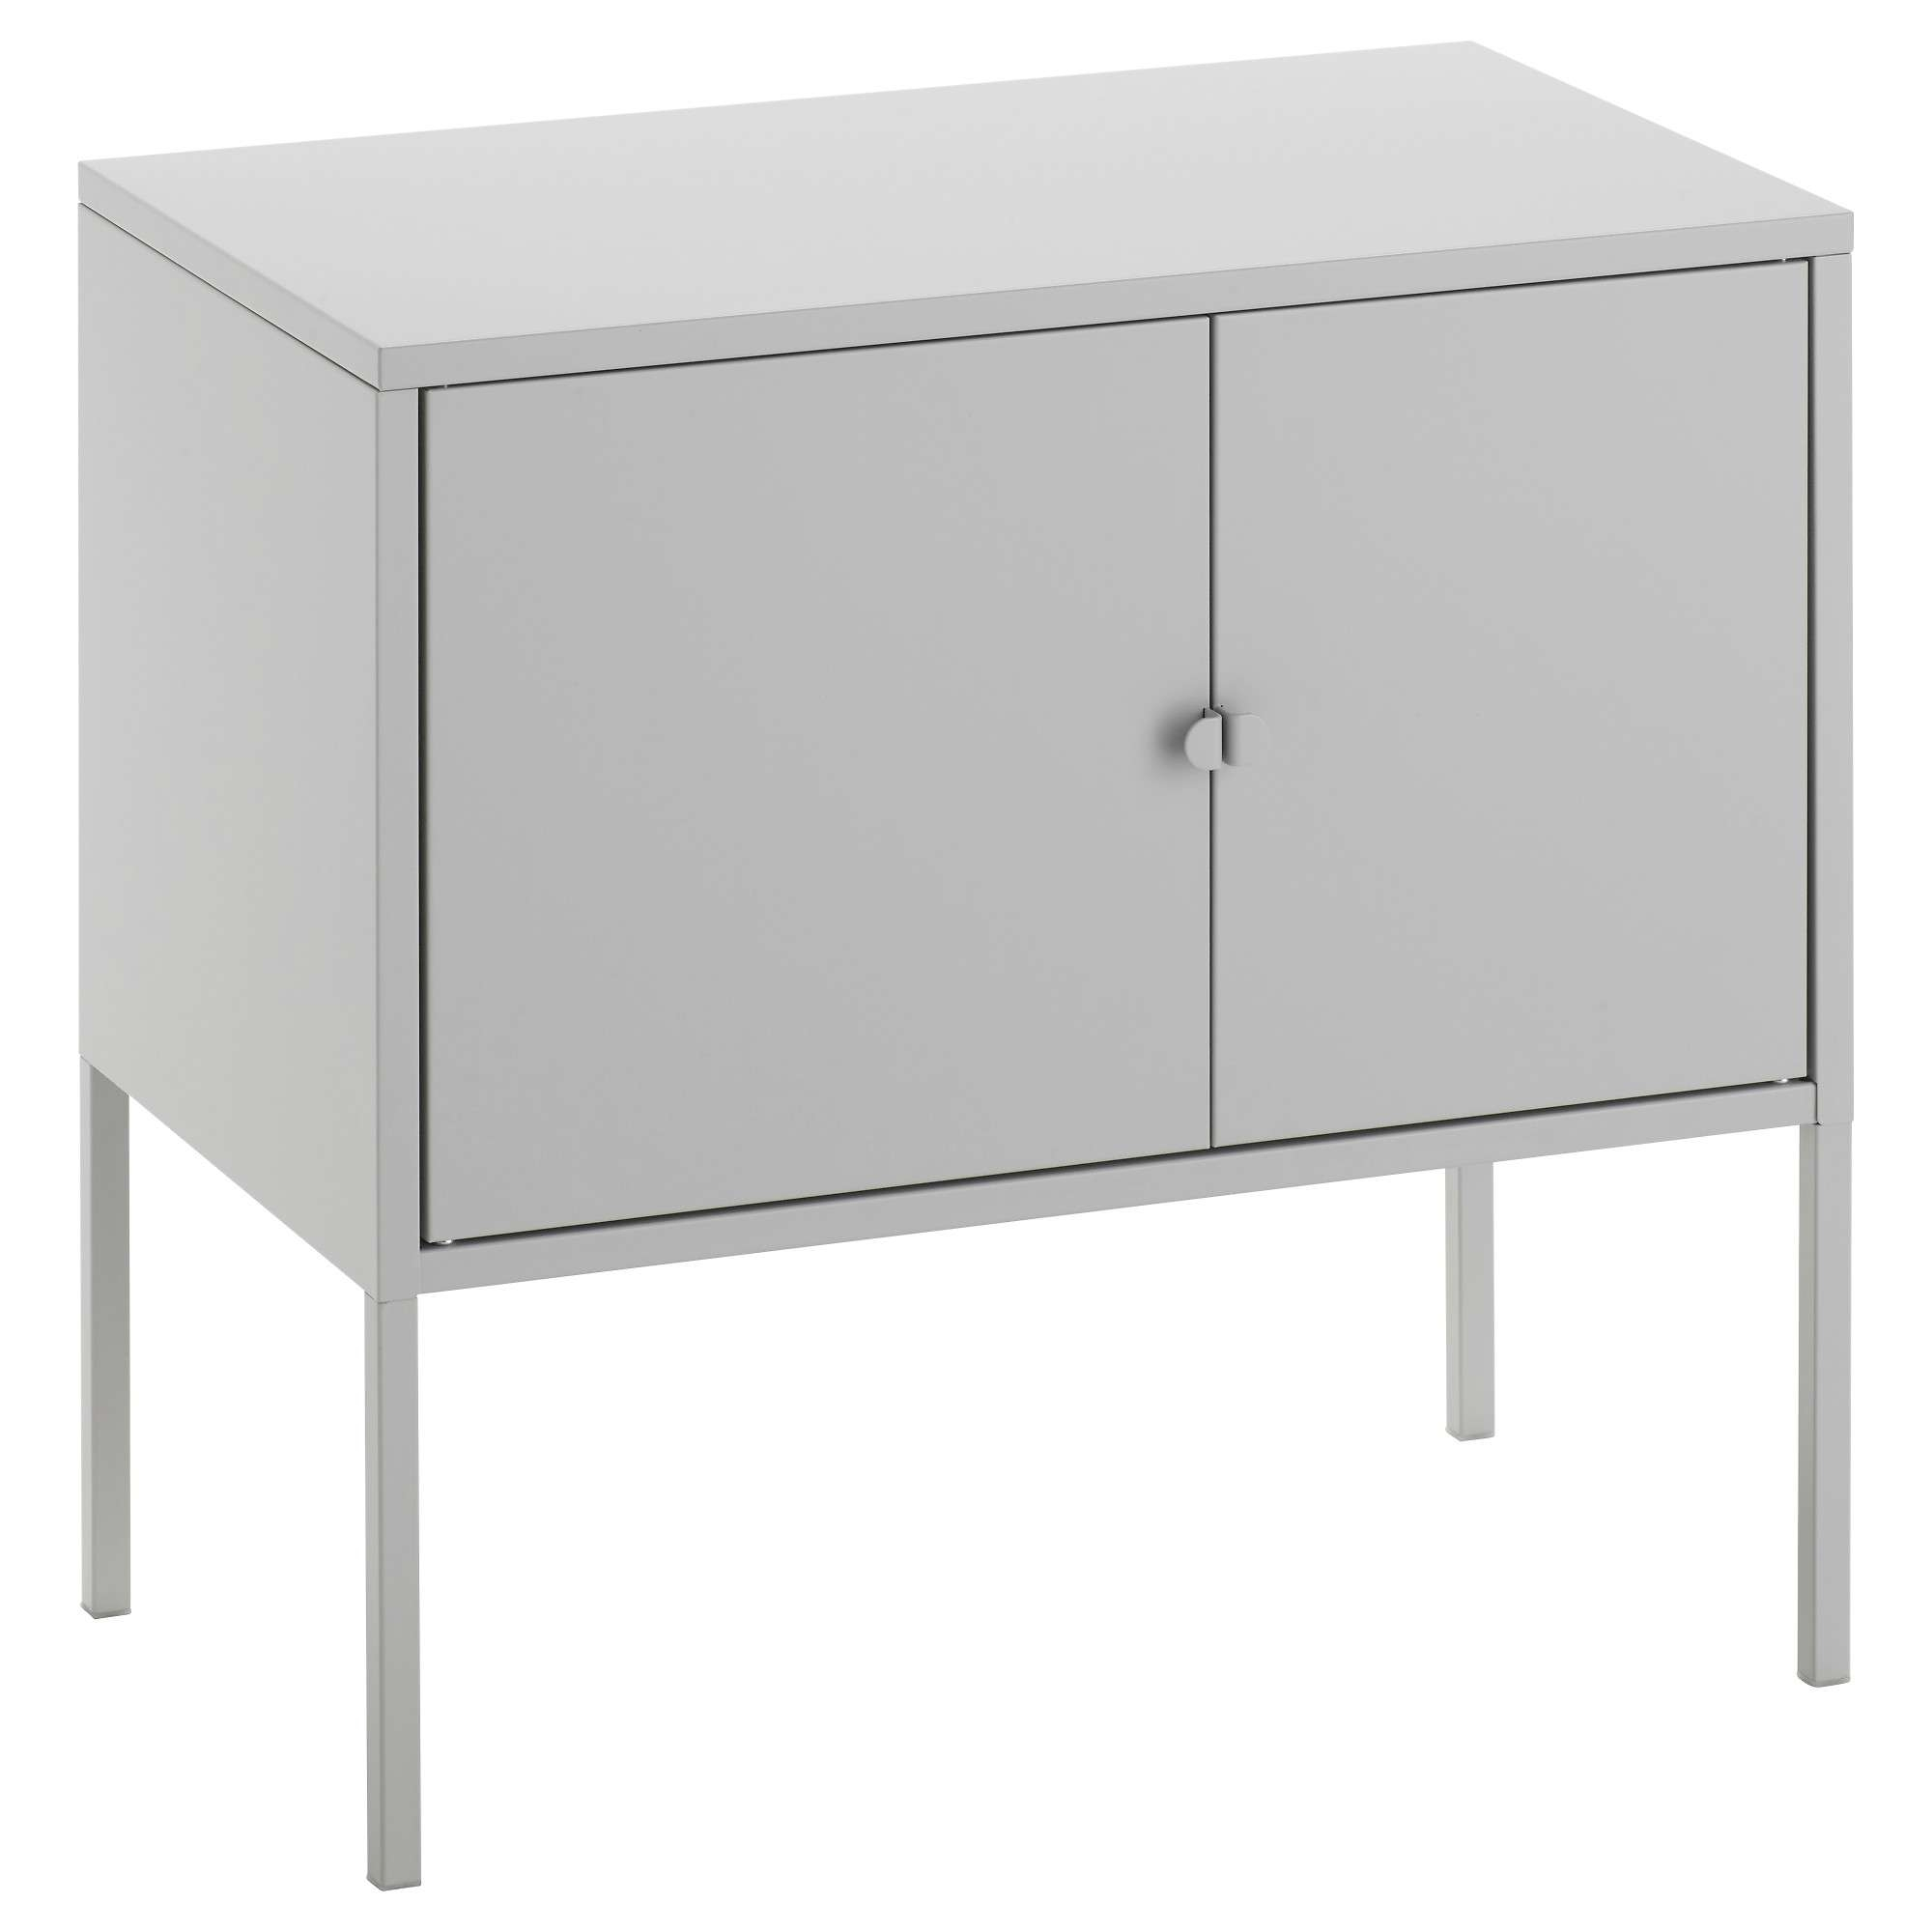 Cabinets & Sideboards – Ikea Within 14 Inch Deep Sideboards (View 13 of 20)